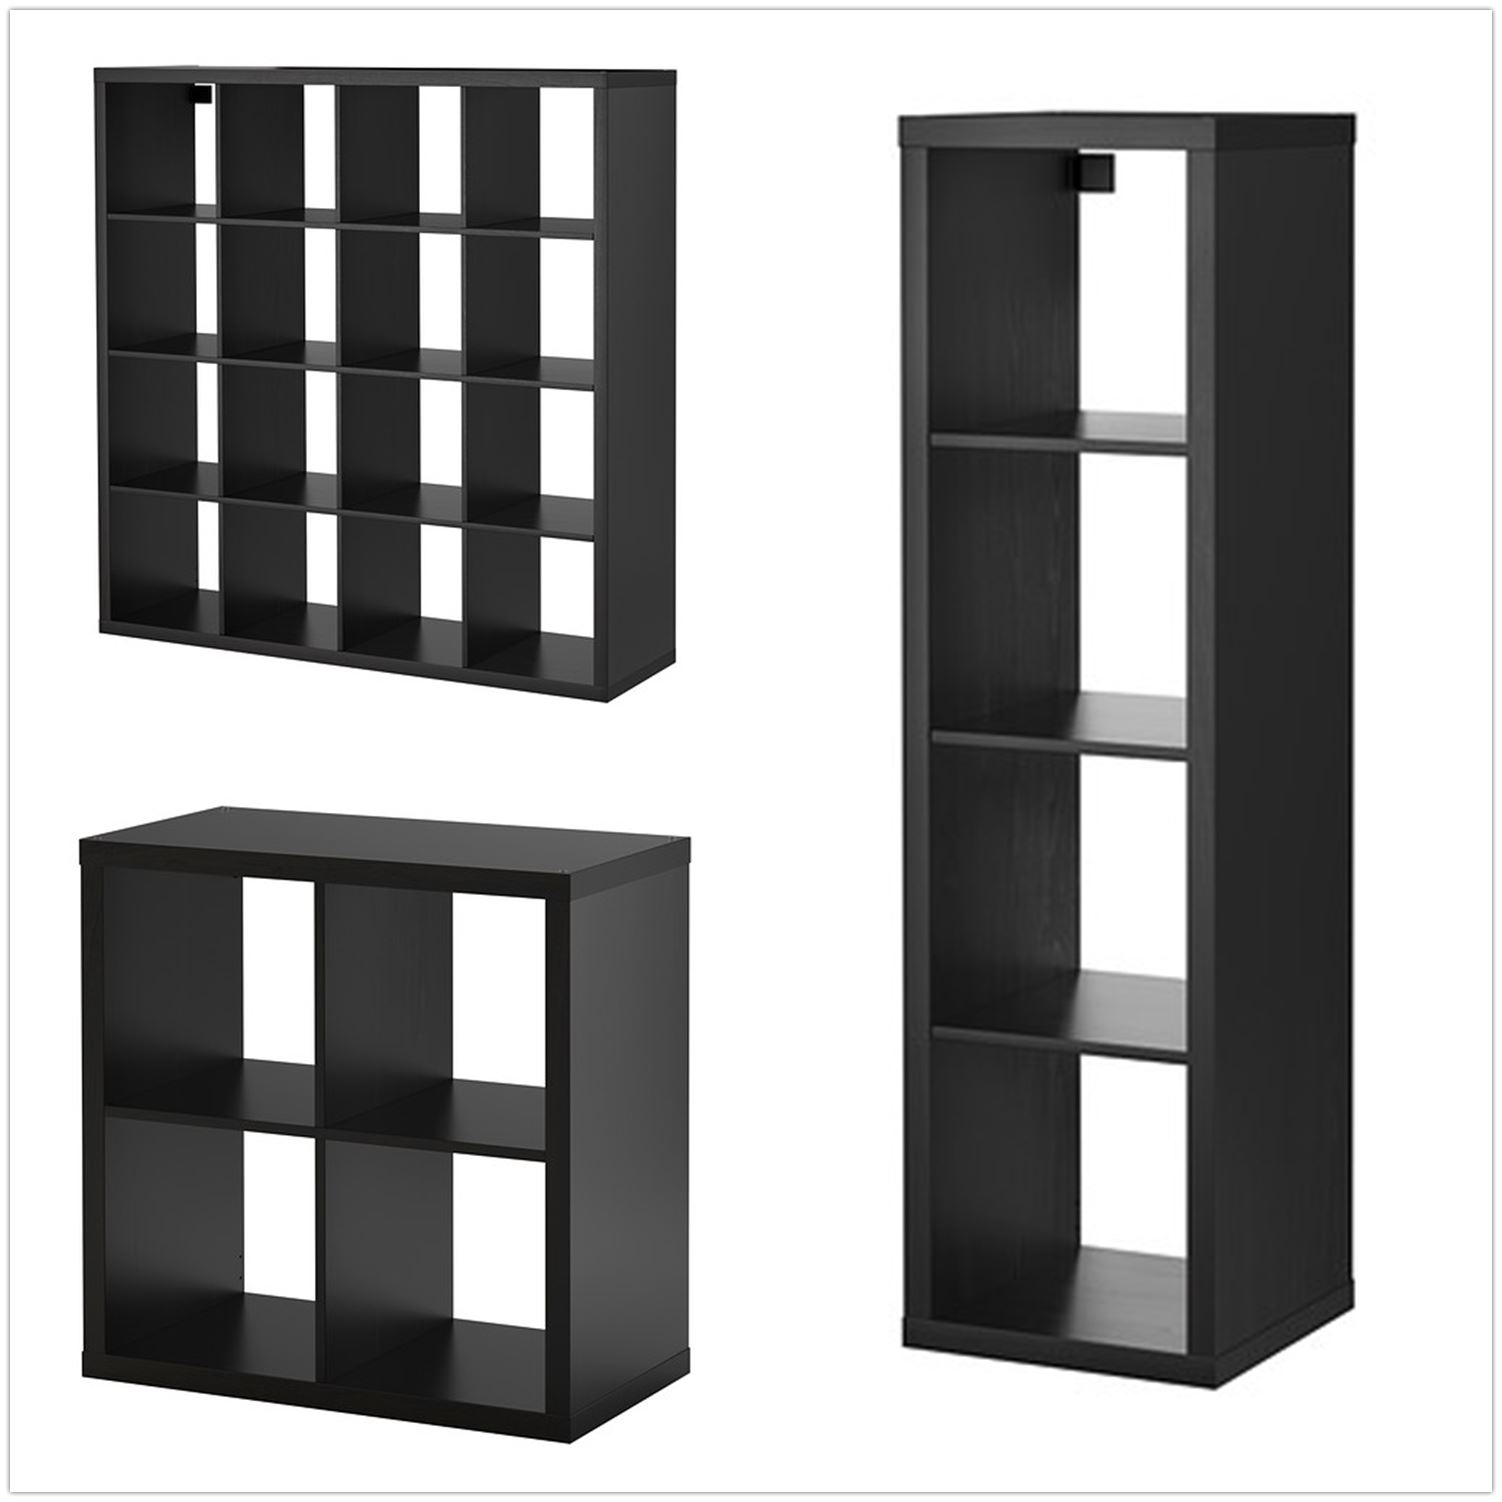 IKEA Kallax Cube Storage Series Shelf Shelving Units Bookcase ...